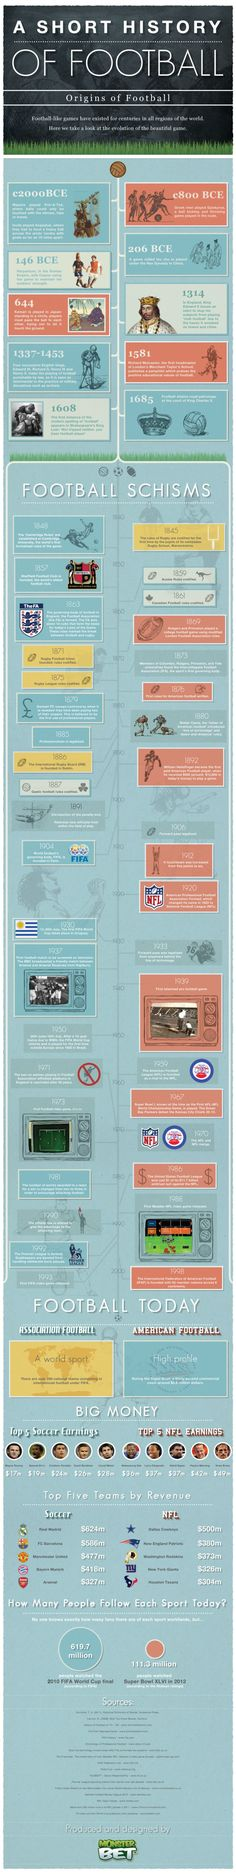 Football (soccer and football) first appears in recorded history around 2,000 BC, although it wasn't until 1581 that the team game and formal rules were started. A different style of the game began in Rugby in 1845, followed by the new American-style football 24 years later. Our infographic looks at the origins of these brilliant games.